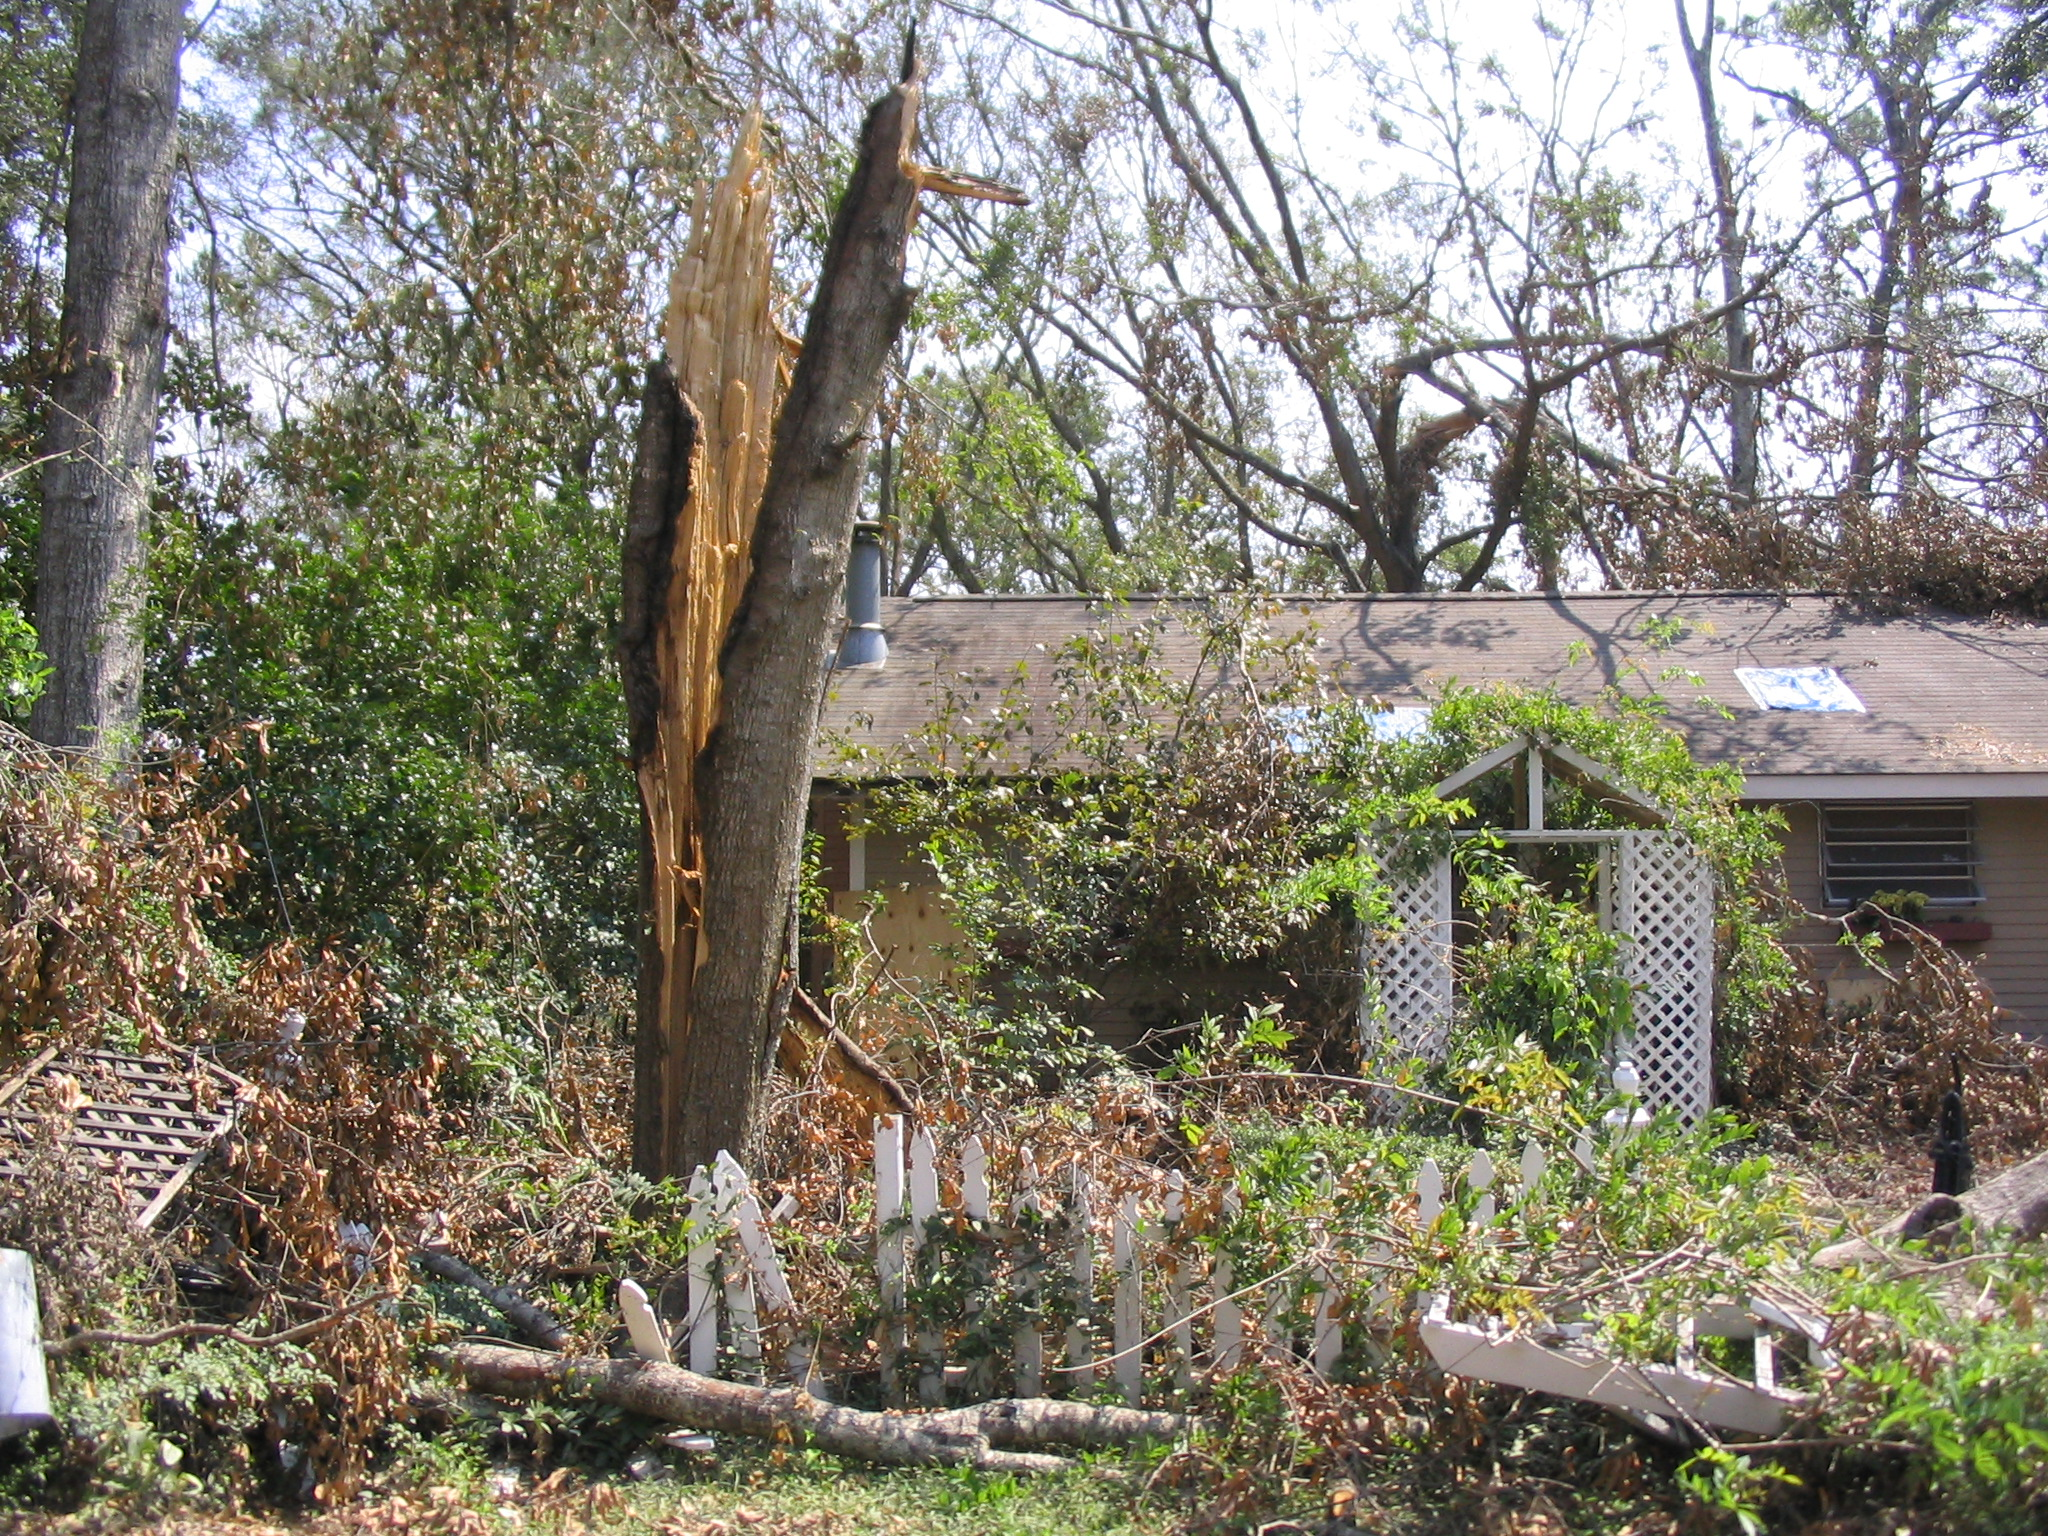 storm damage and trees near home.JPG thumbnail